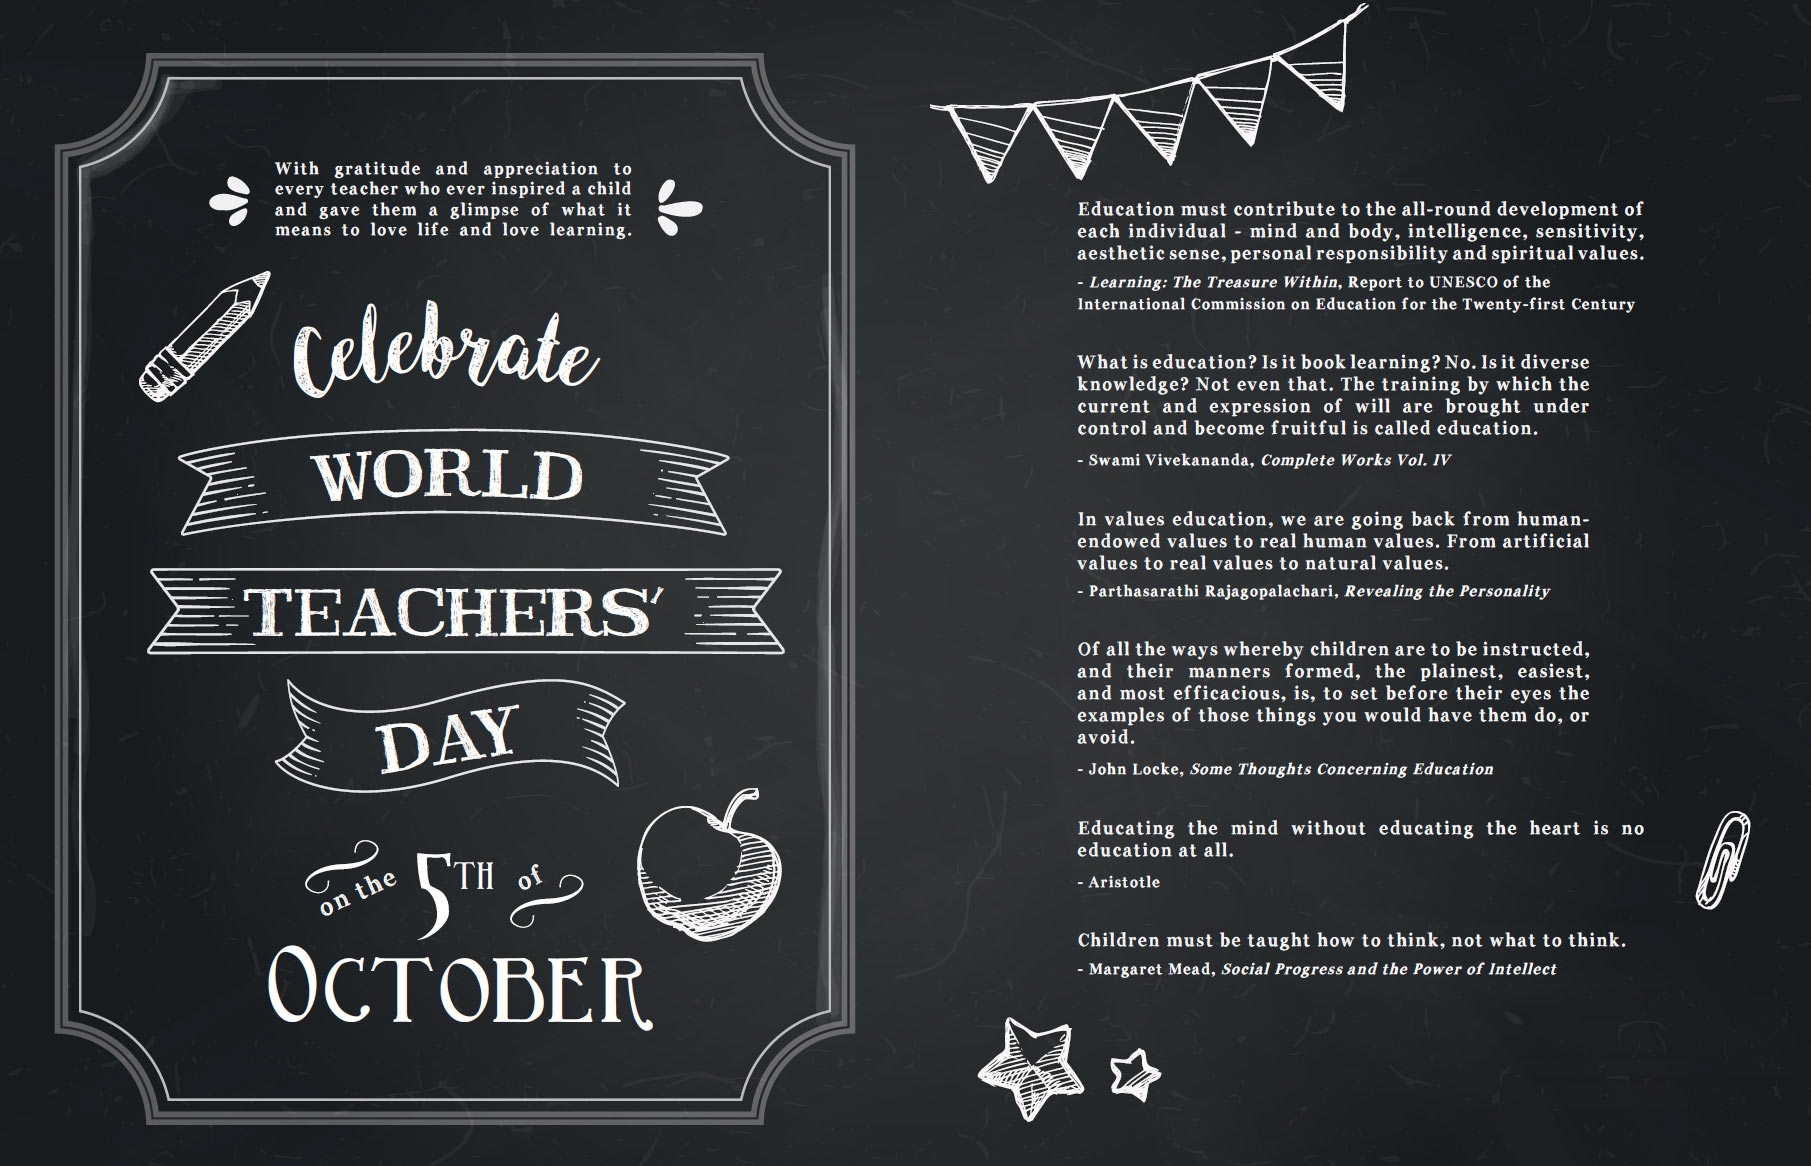 World Teachers' Day - 5th October